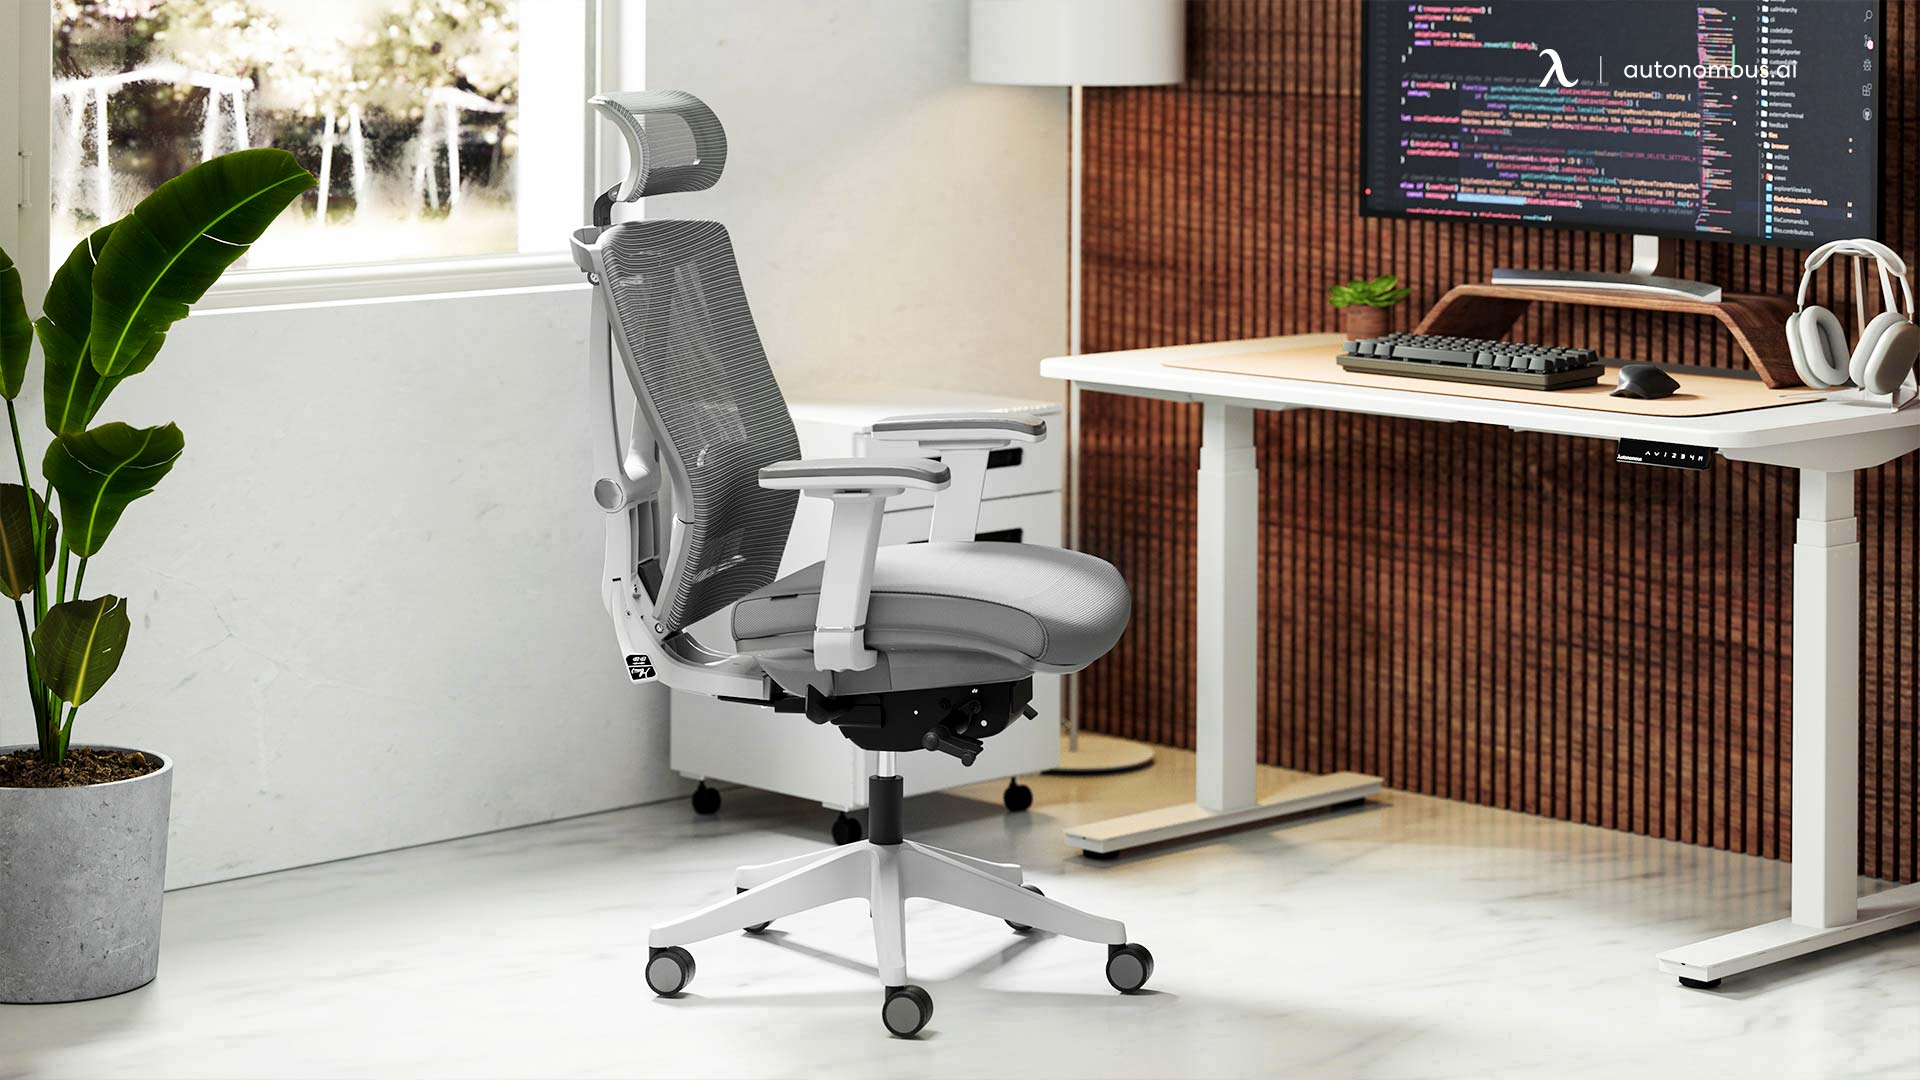 Ergonomic Chair for home office makeover